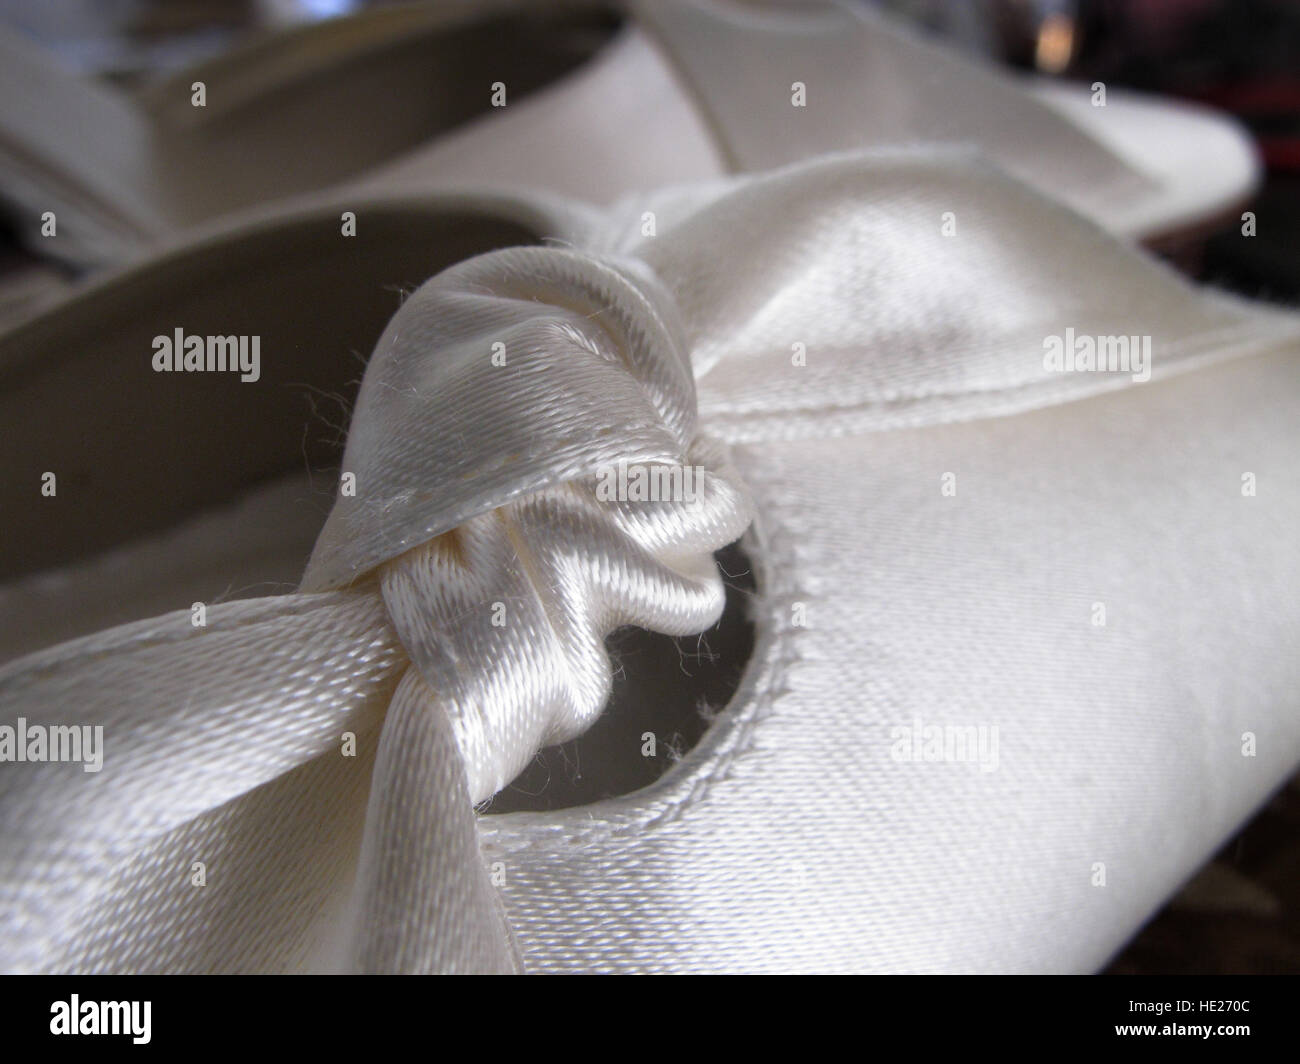 White fabric bow tied on a ladies shoe - Stock Image